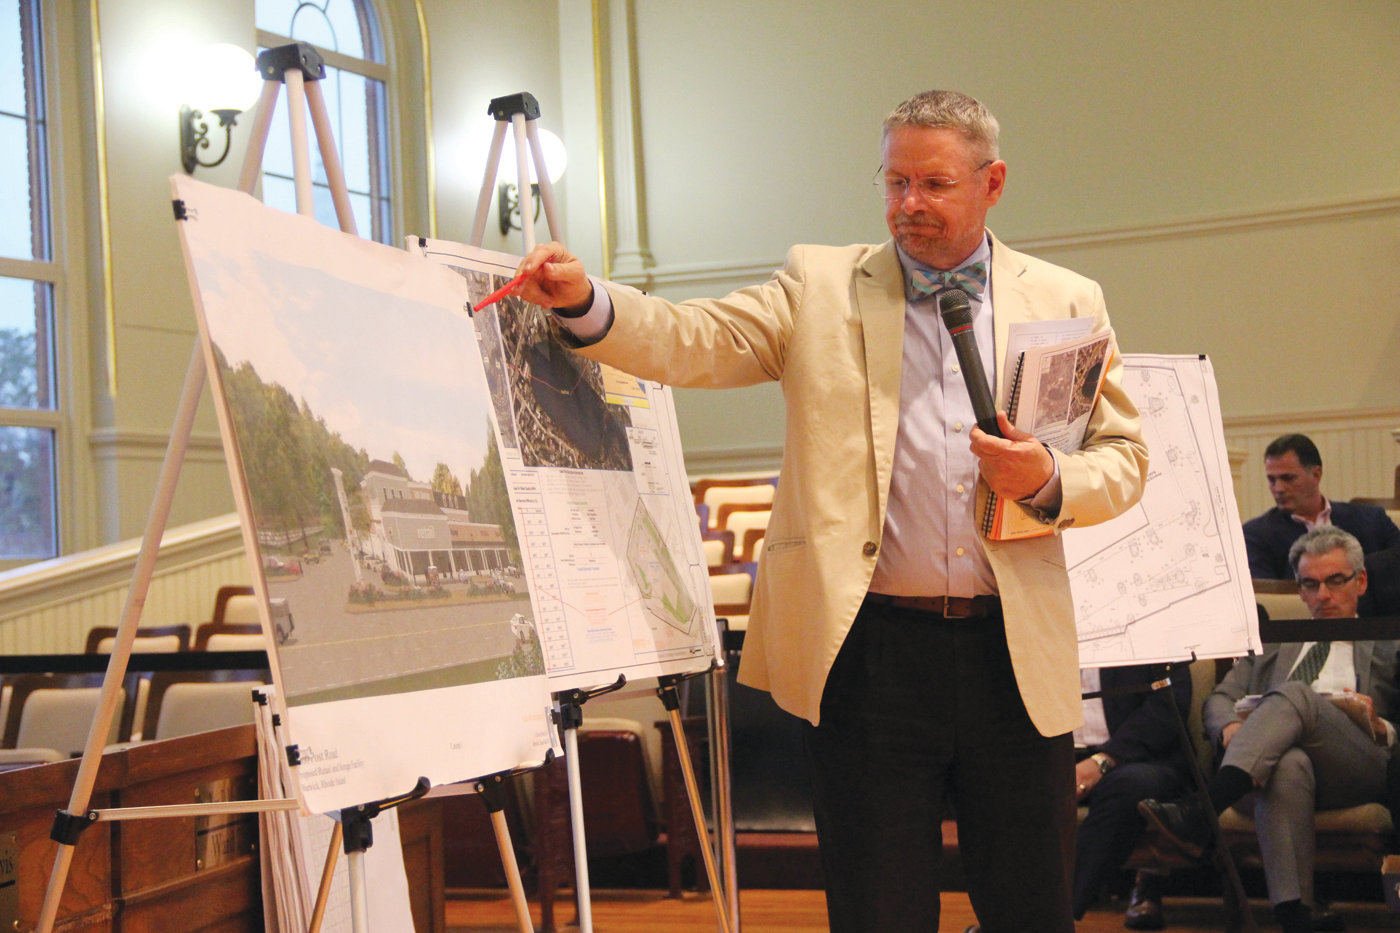 (Warwick Beacon photos)